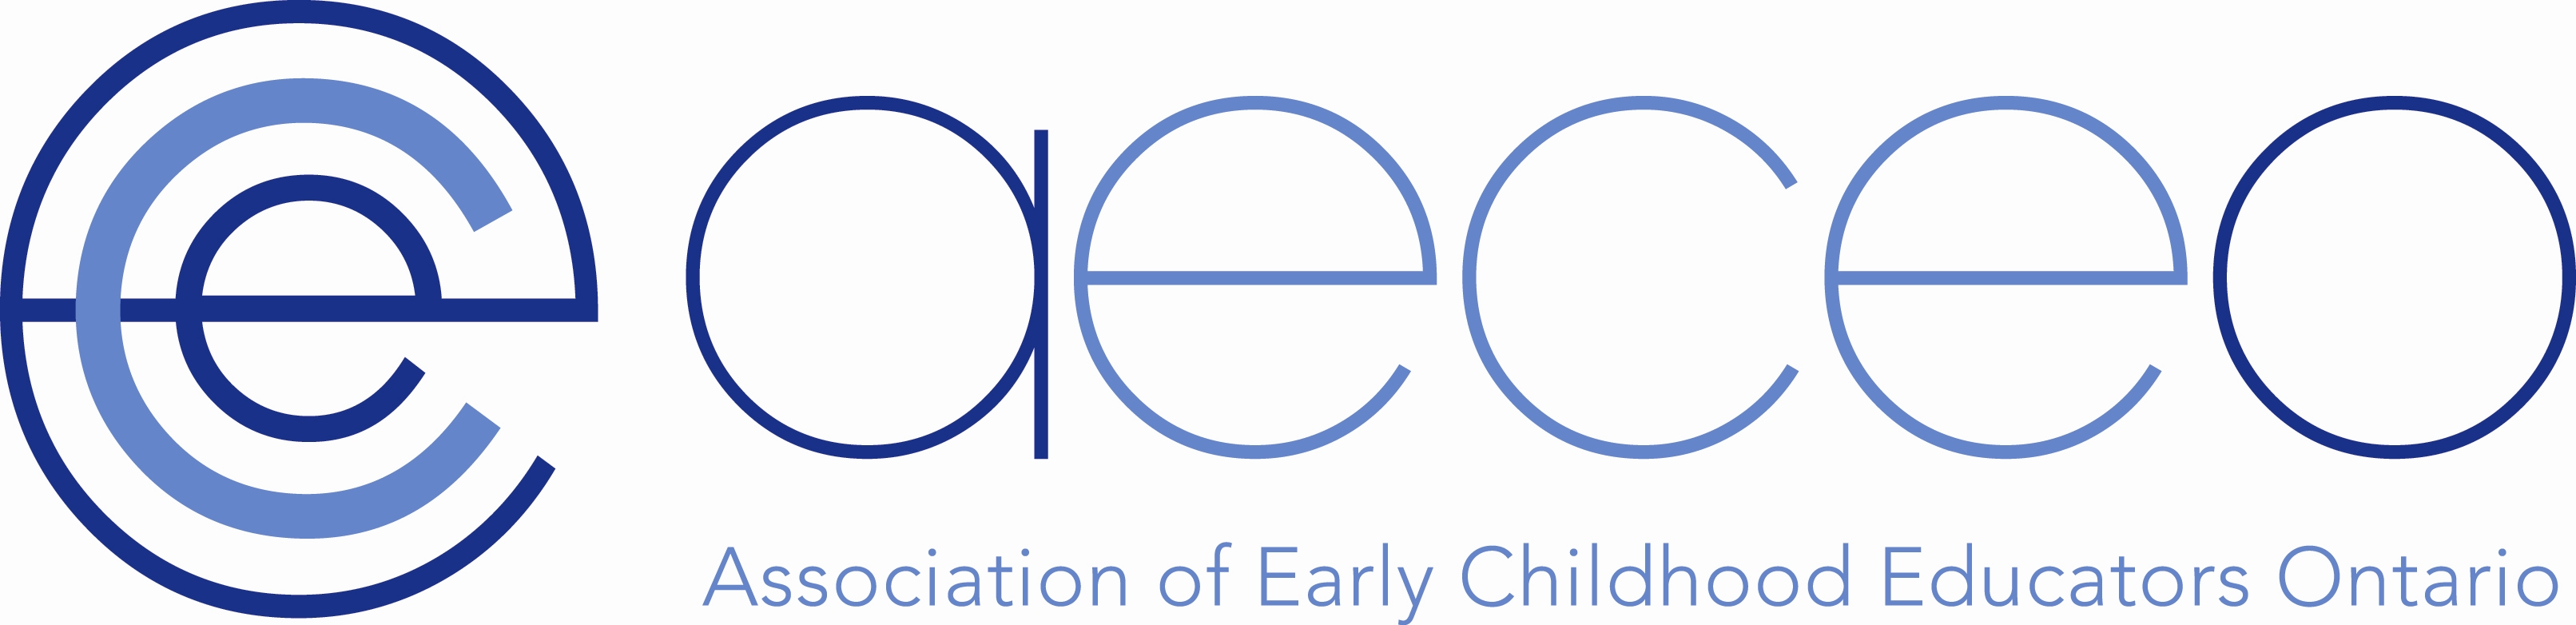 Association Of Early Childhood Educators Ontario